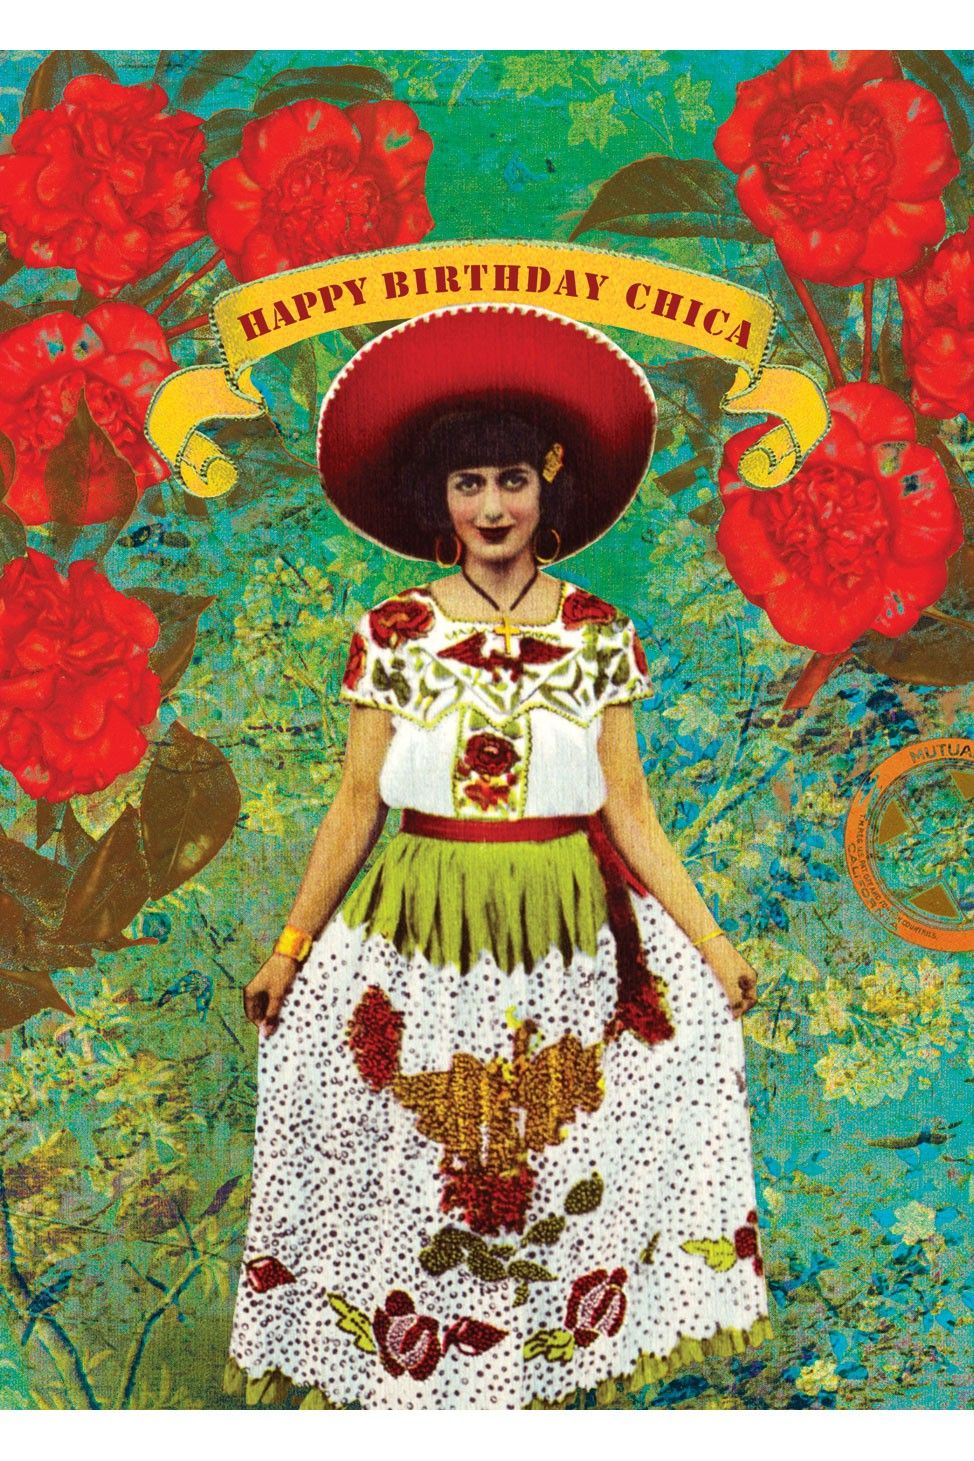 Chica Greeting Card Happy birthday greetings, Happy